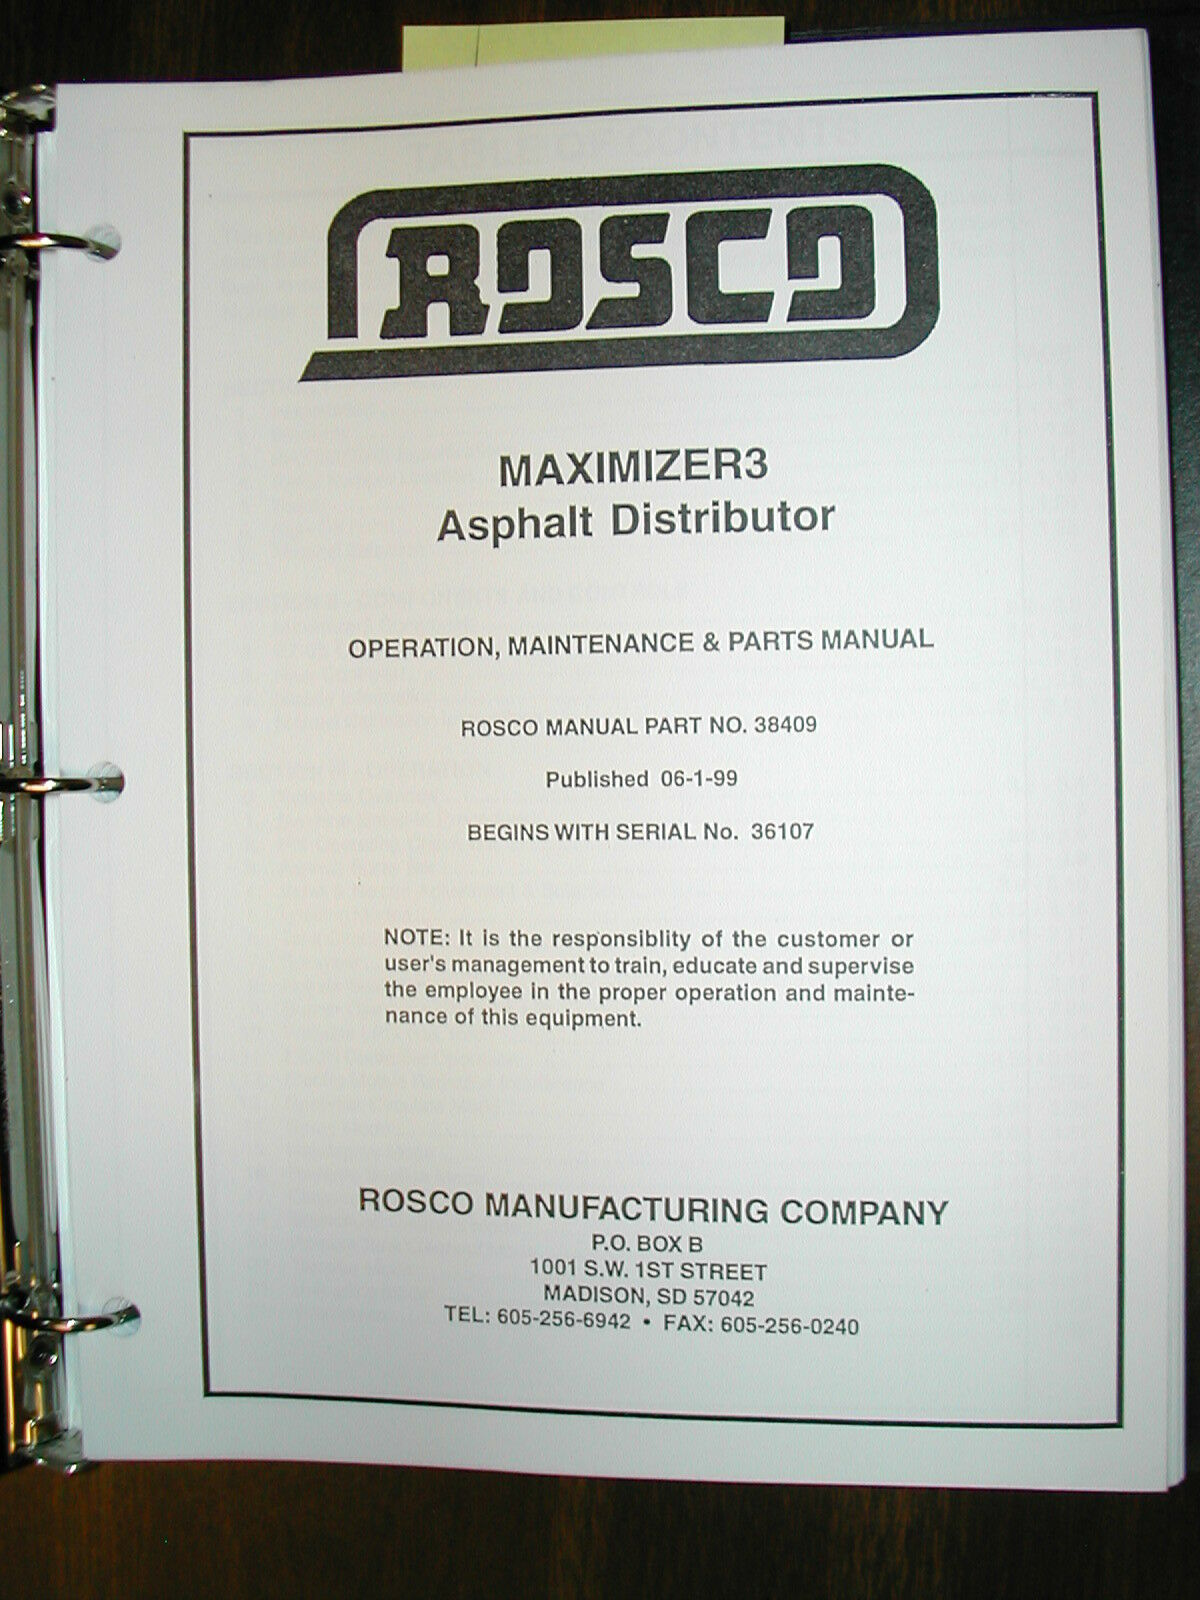 Rosco Maximizer Iii Distributor Operation Maintenance Parts Manual Ford 9n Diagram Norton Secured Powered By Verisign